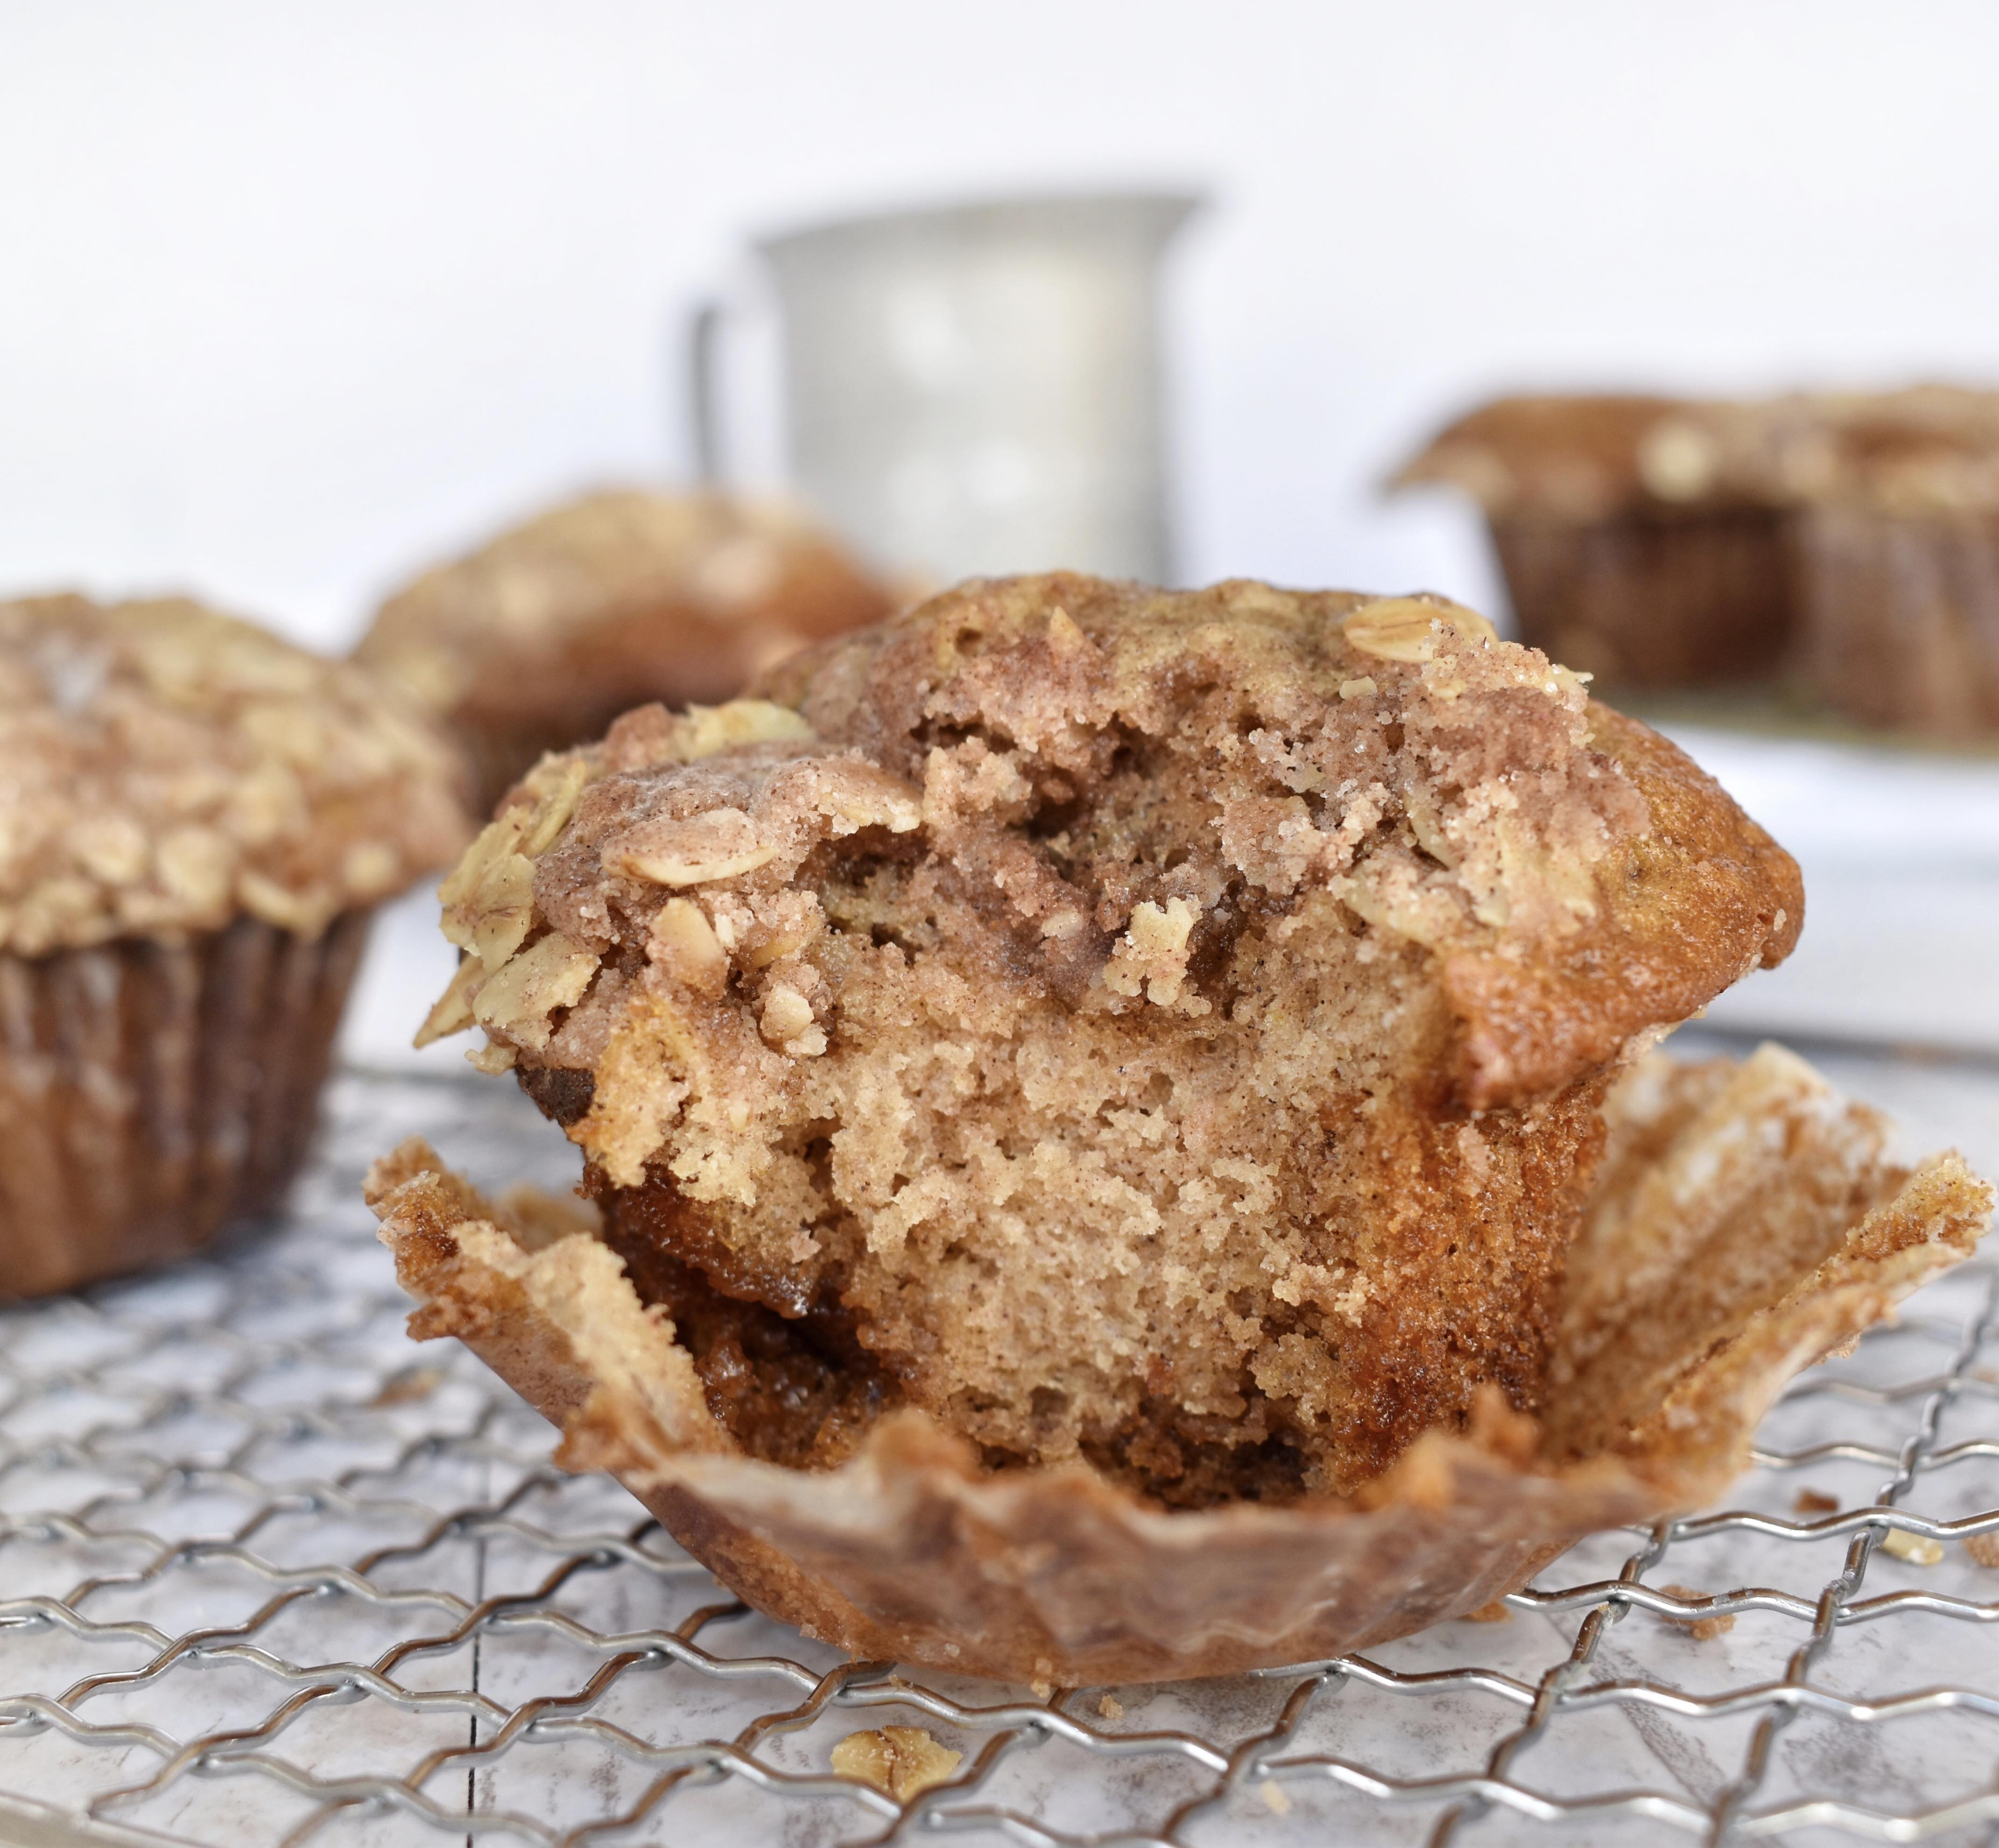 cinnamon streusel muffin with bite out of it on cooling rack